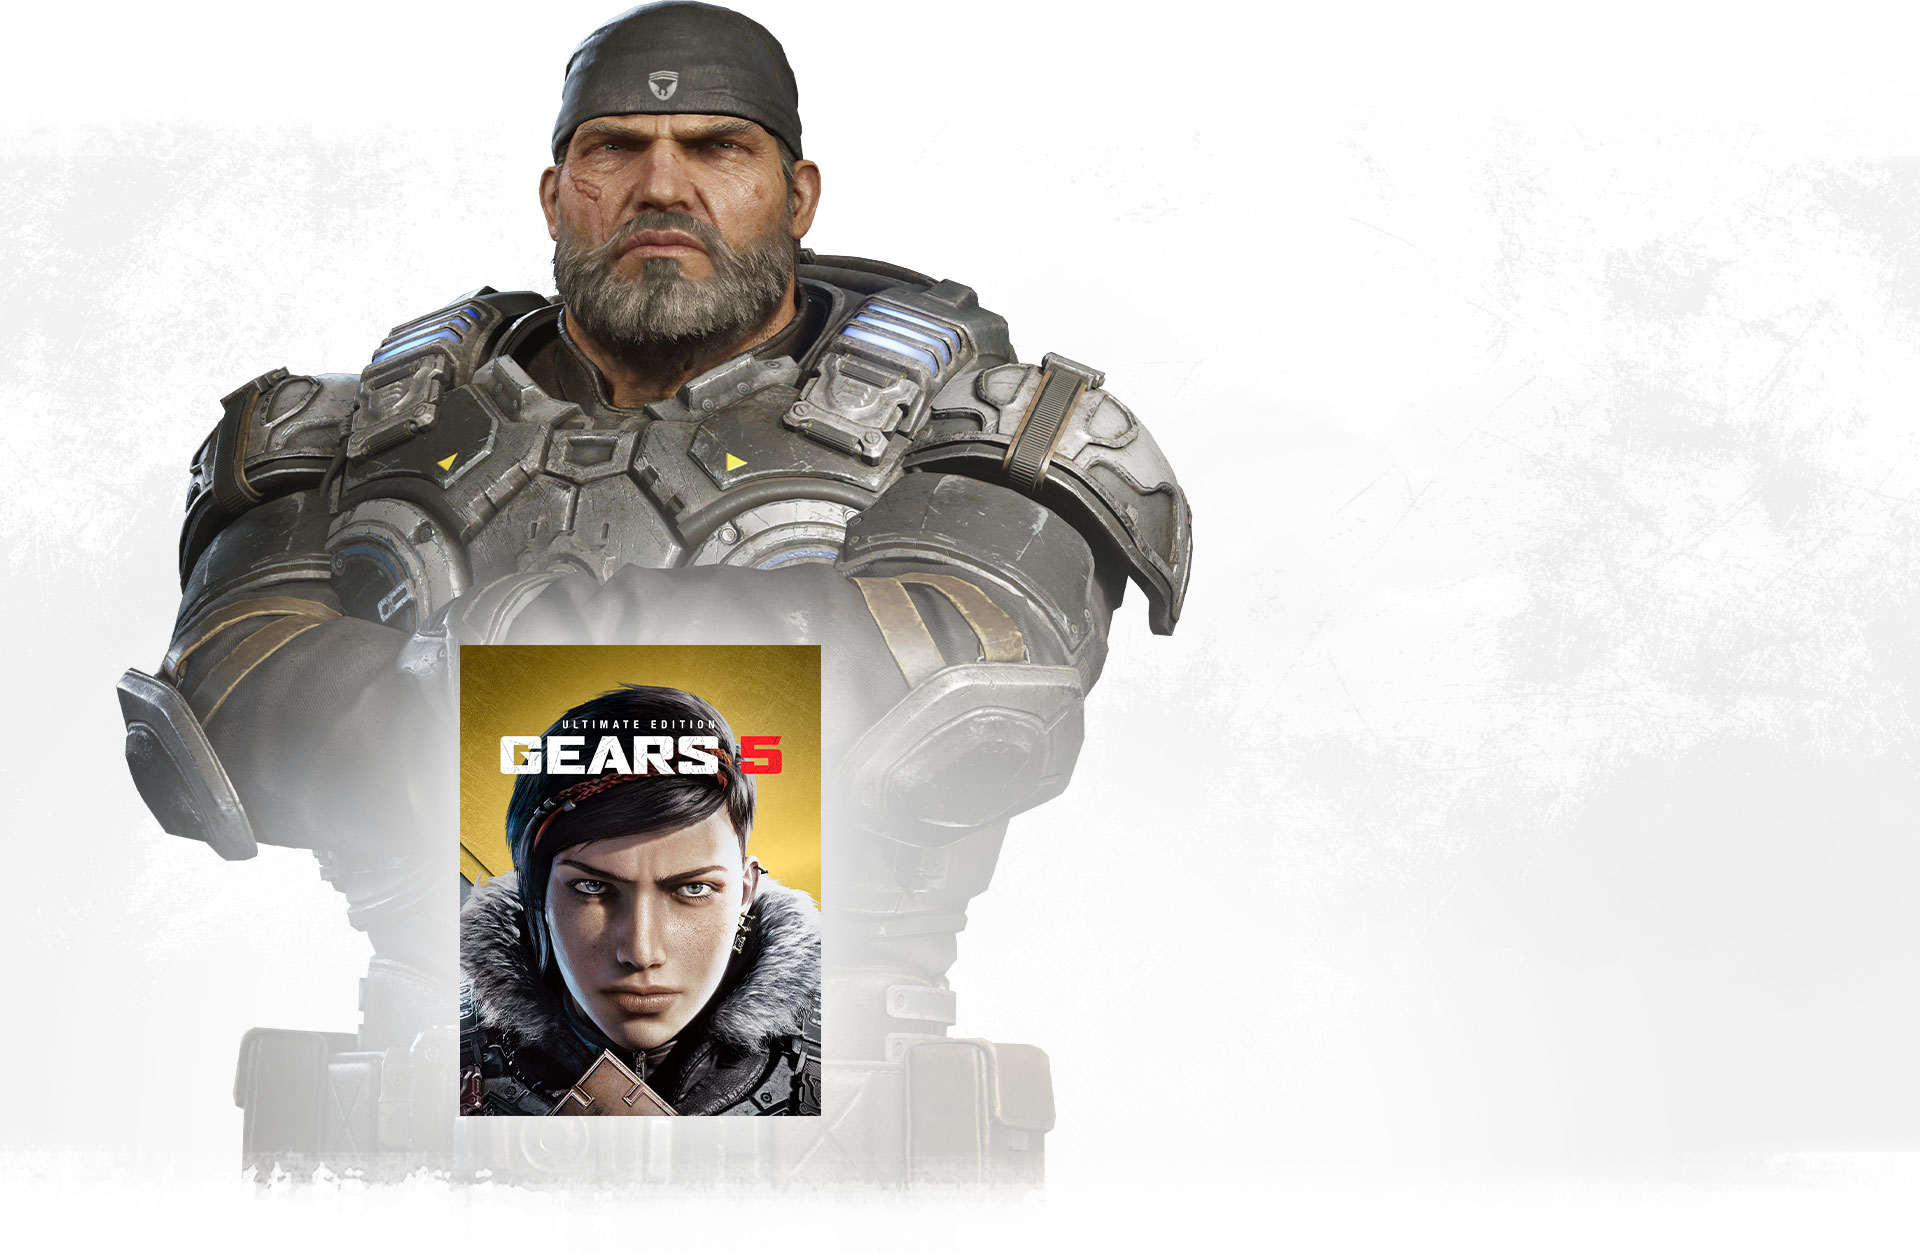 Gears 5 boxshot with Marcus Fenix standing behind with arms crossed